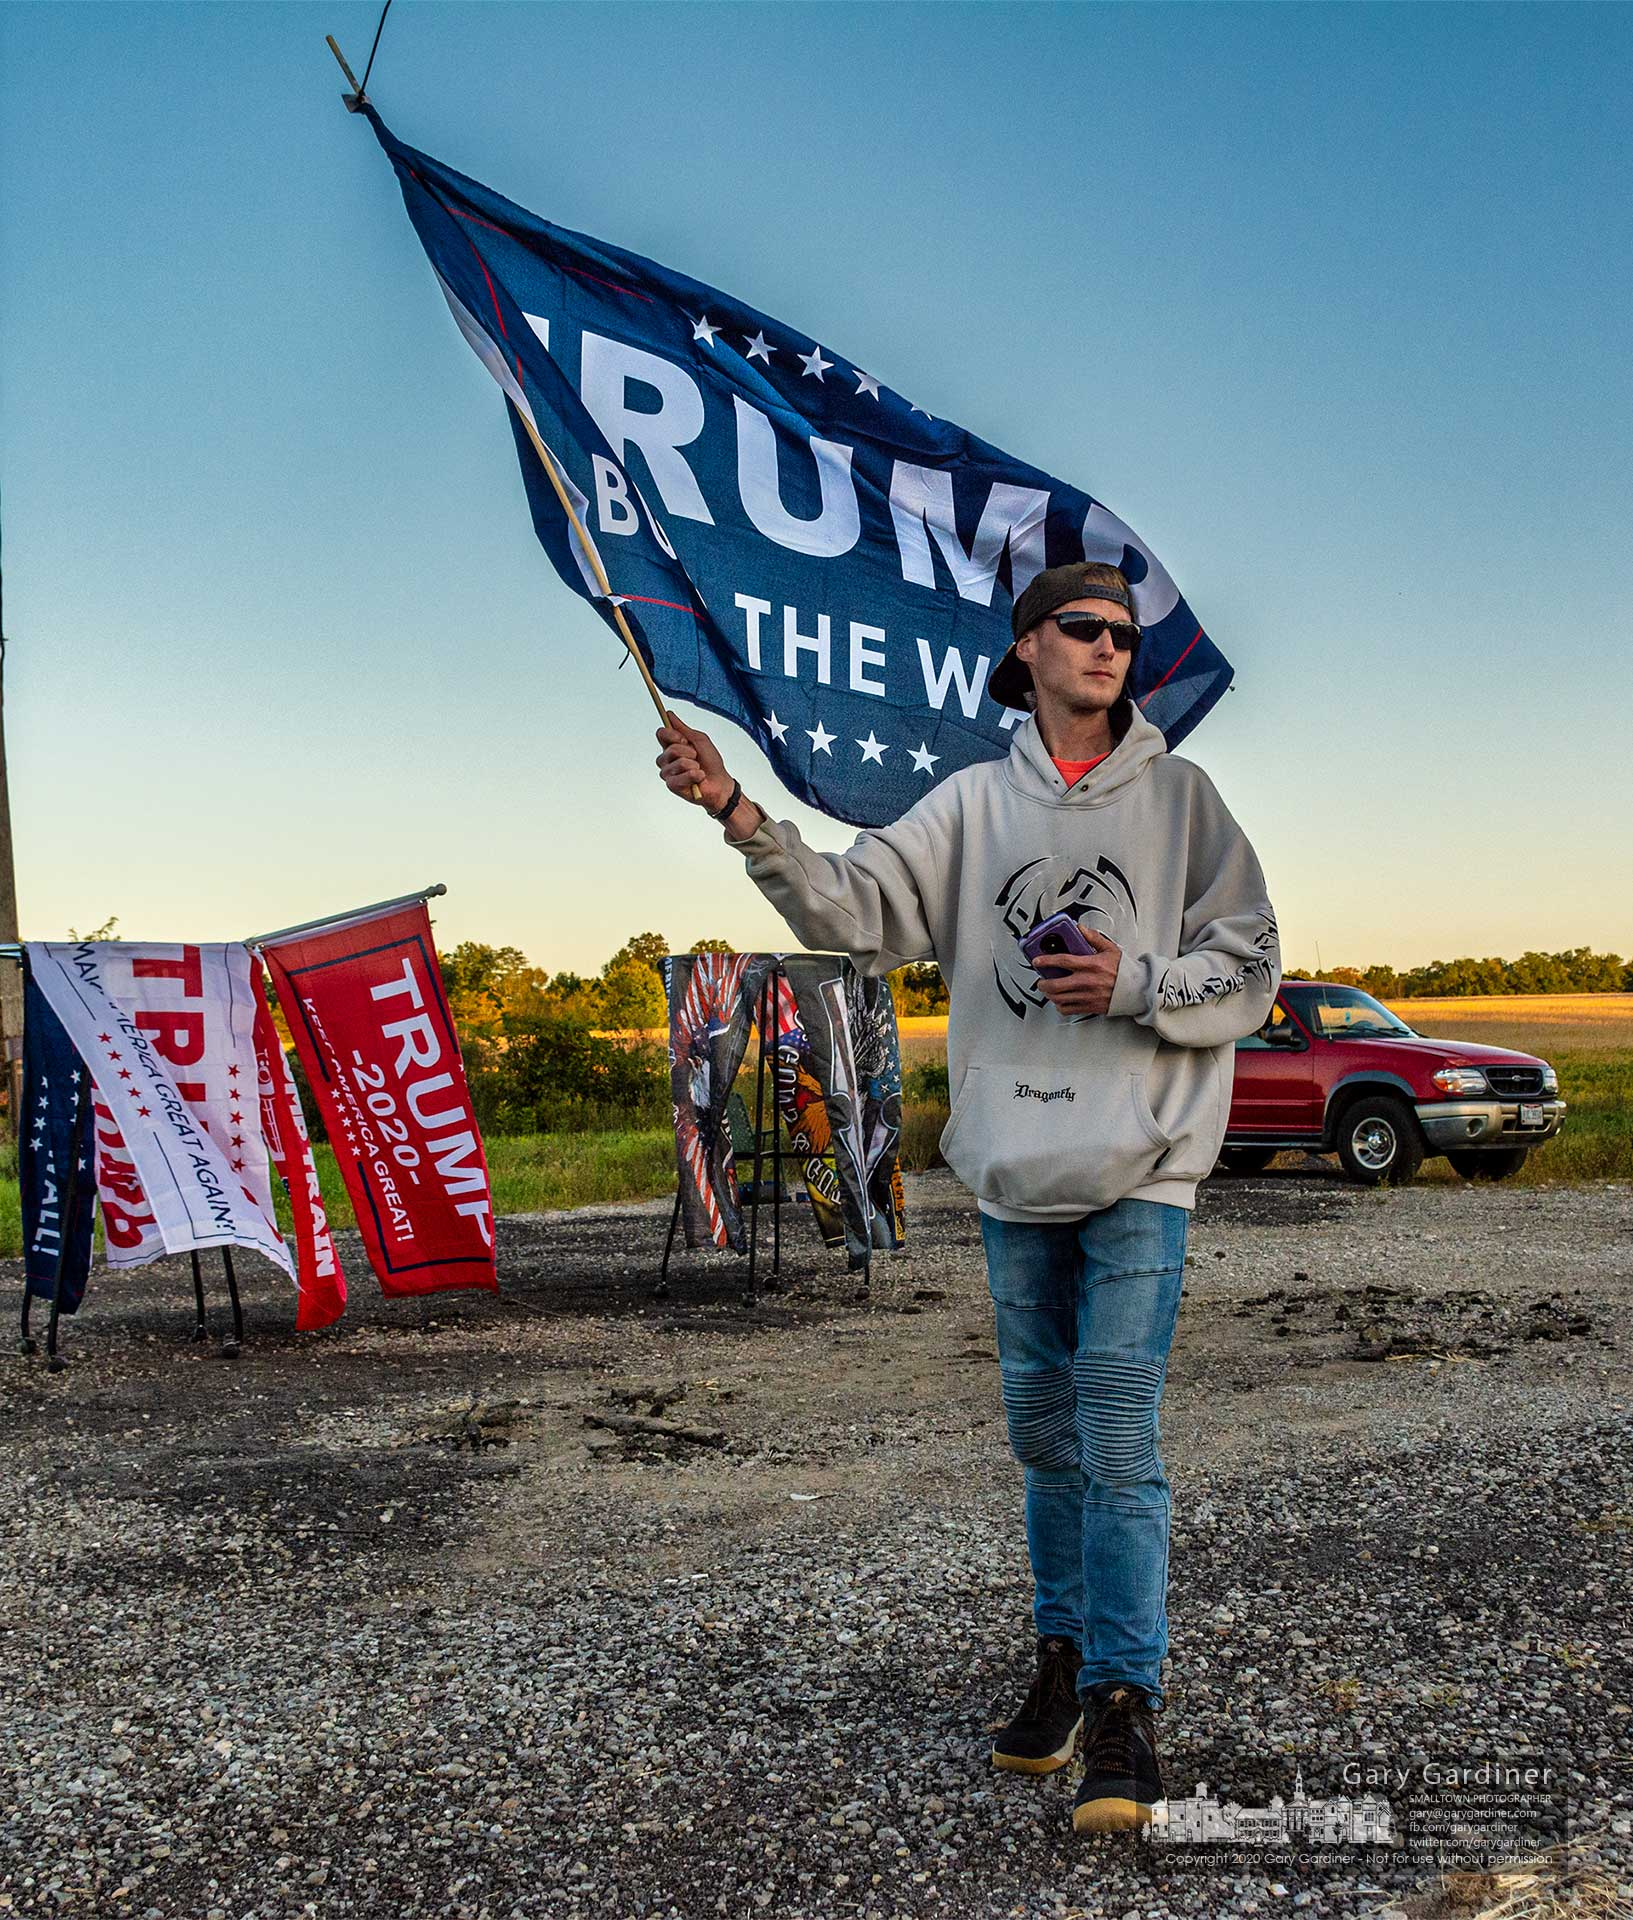 A man carries a pro-Trump sign across the graded parking lot near Marengo where he is selling flags and banners supporting Trump in his re-election campaign. My Final Photo for Sept. 20, 2020.